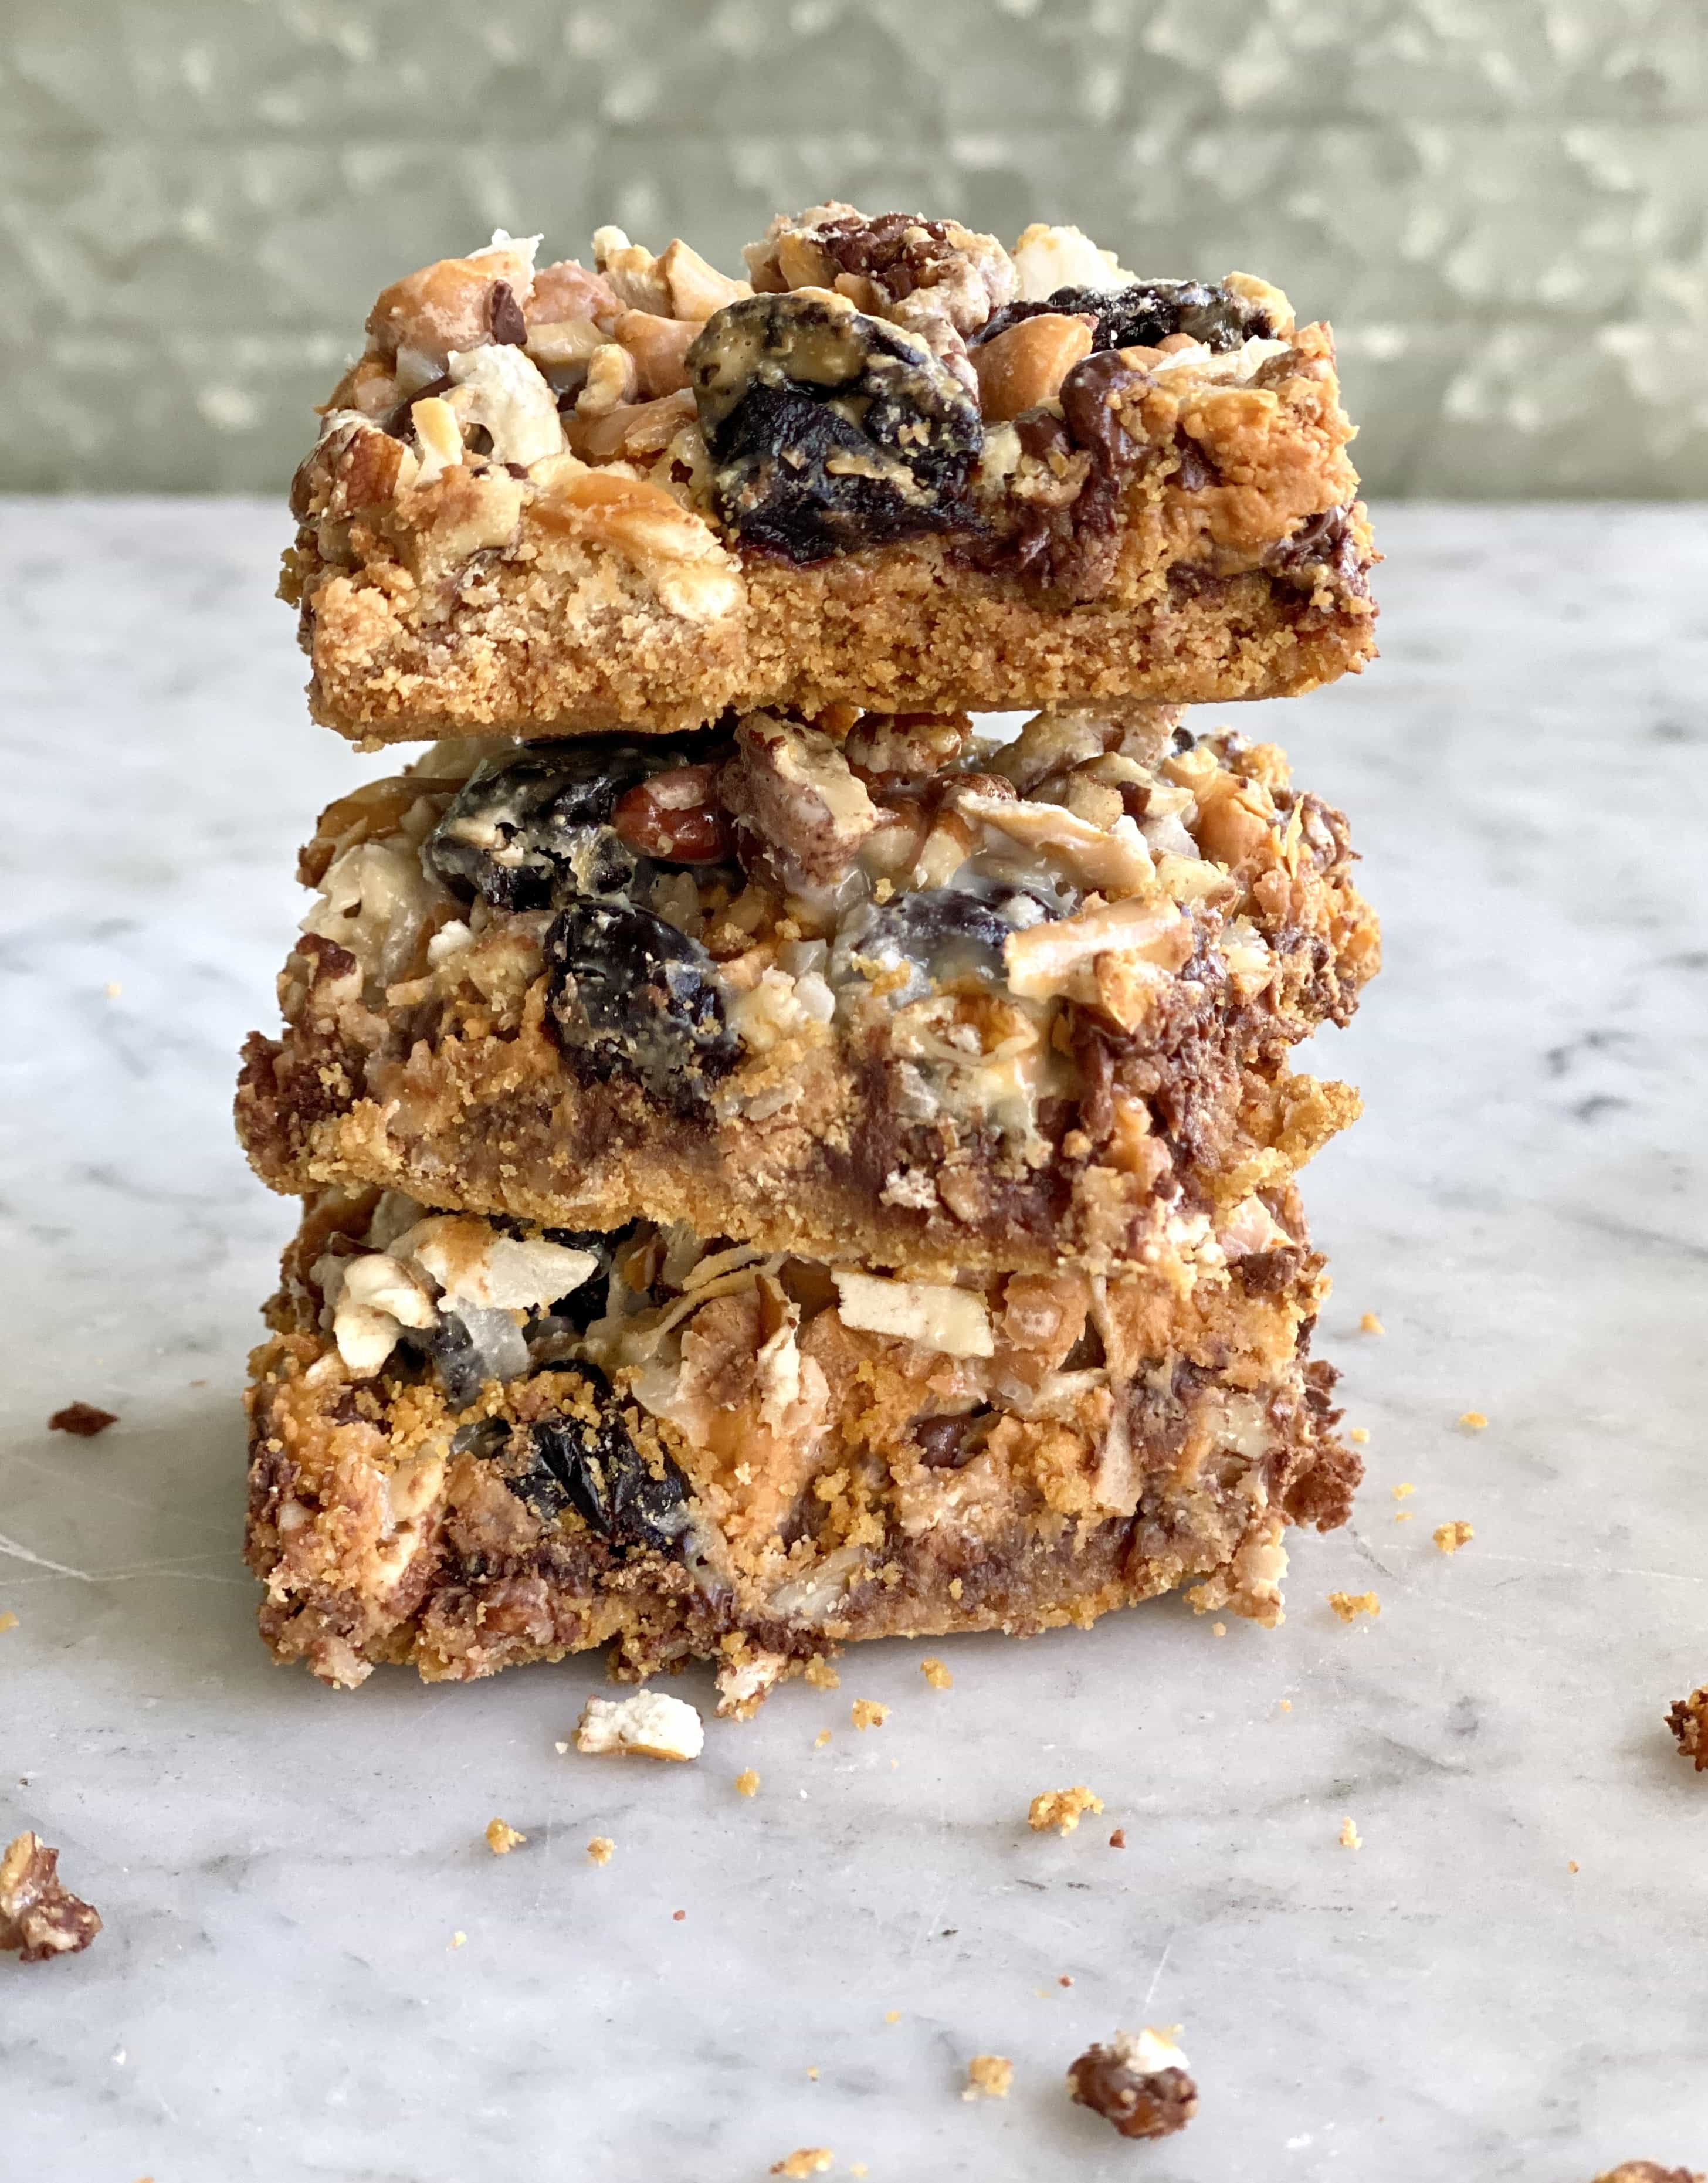 Cherry Magic Bars stacked on a marble table